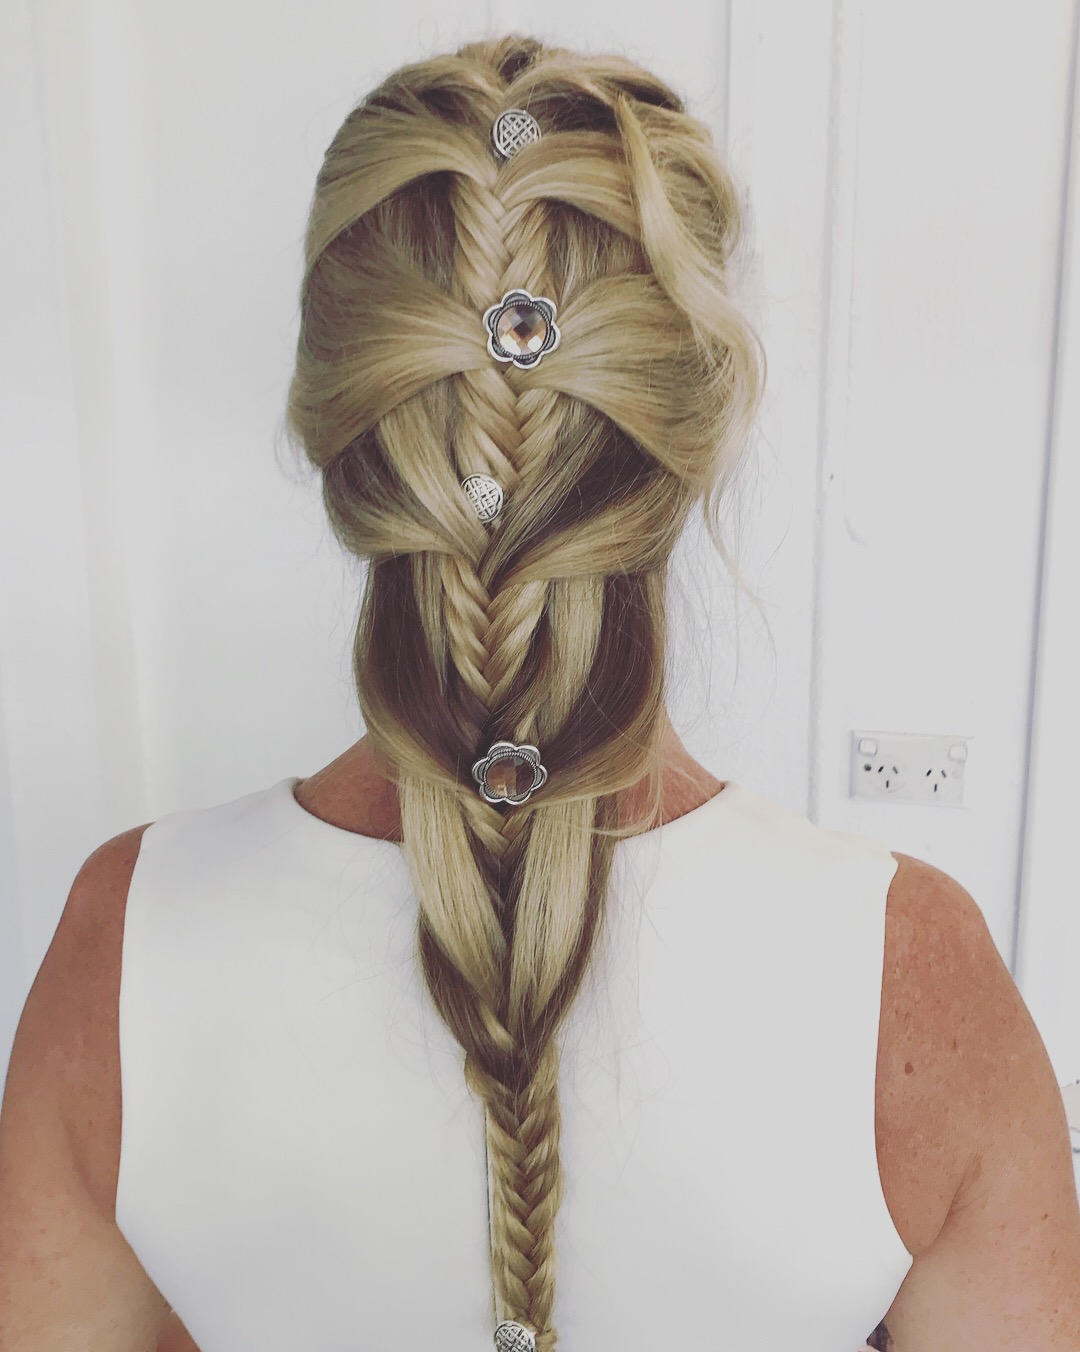 Hair Braiding Salon Australia Kellie Turner 4.JPG